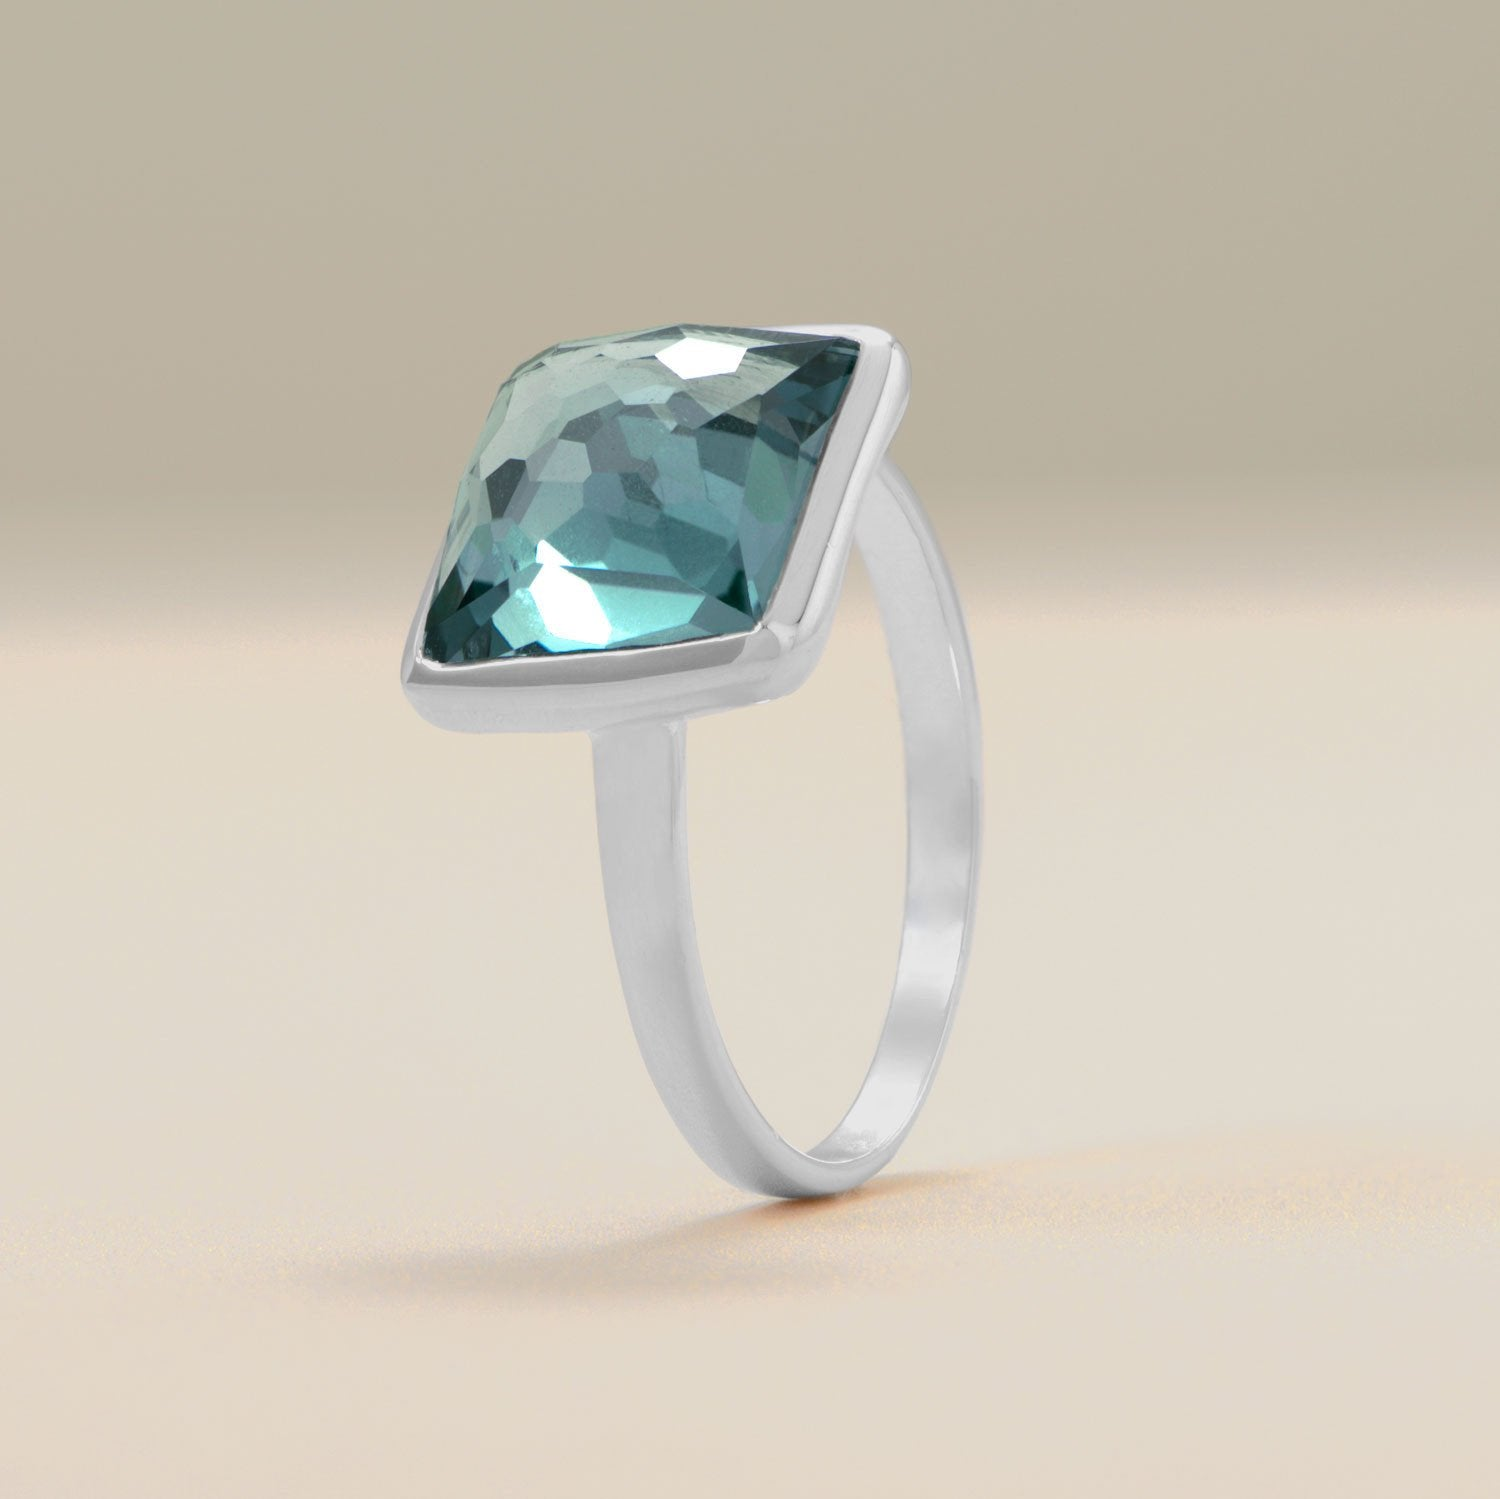 Large Square Freeform Faceted Hydro Quartz Stackable Ring